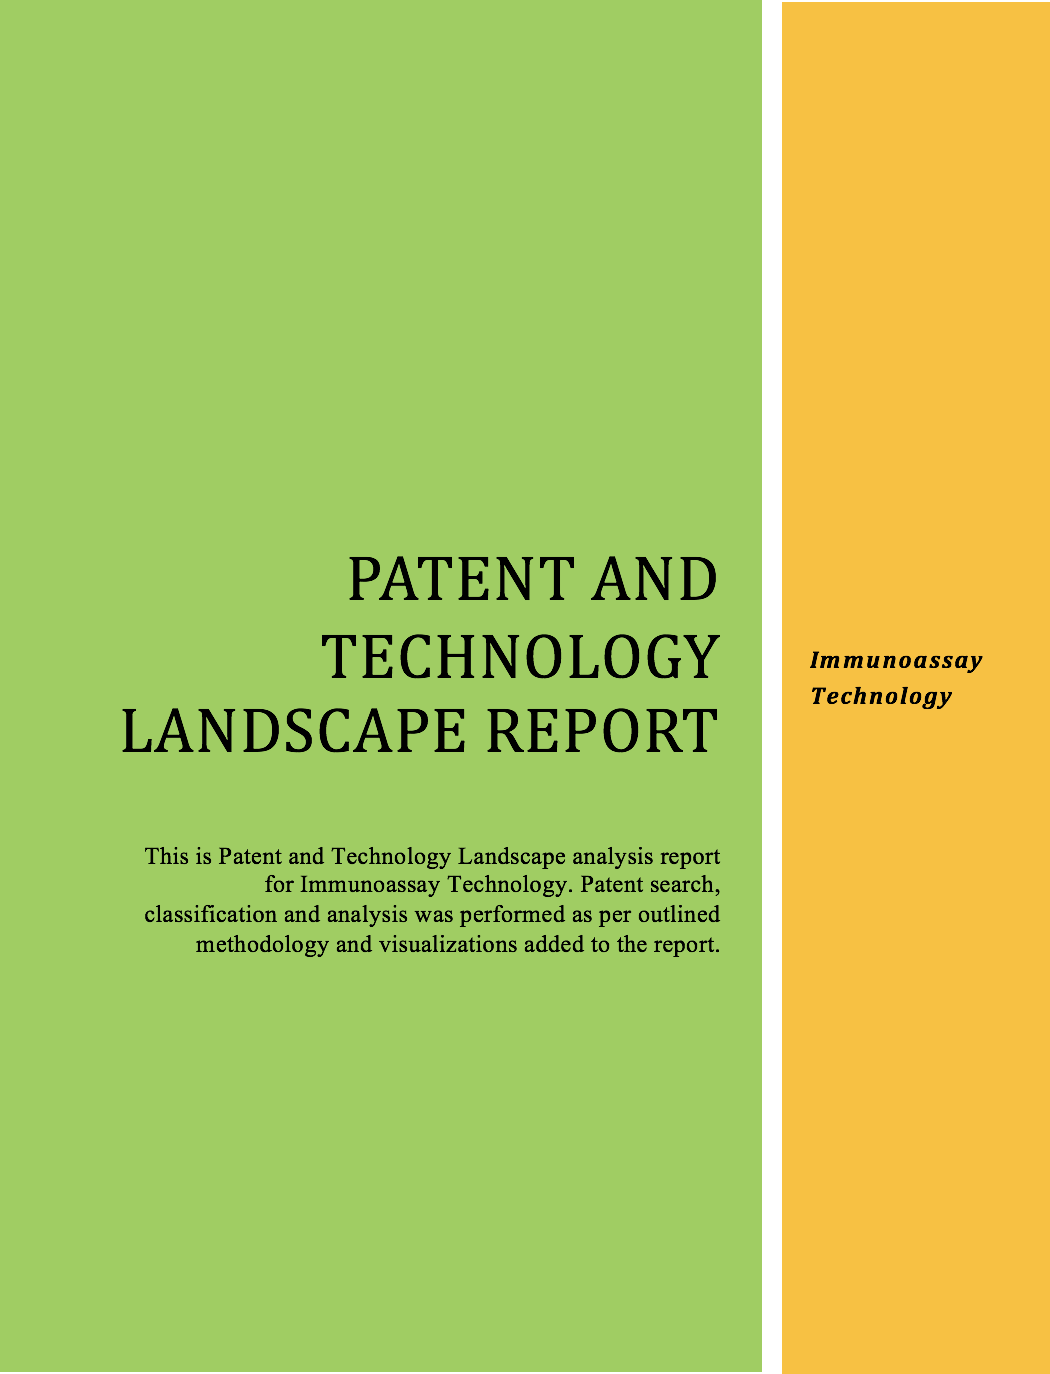 Immunoassay Technology Landscape Report